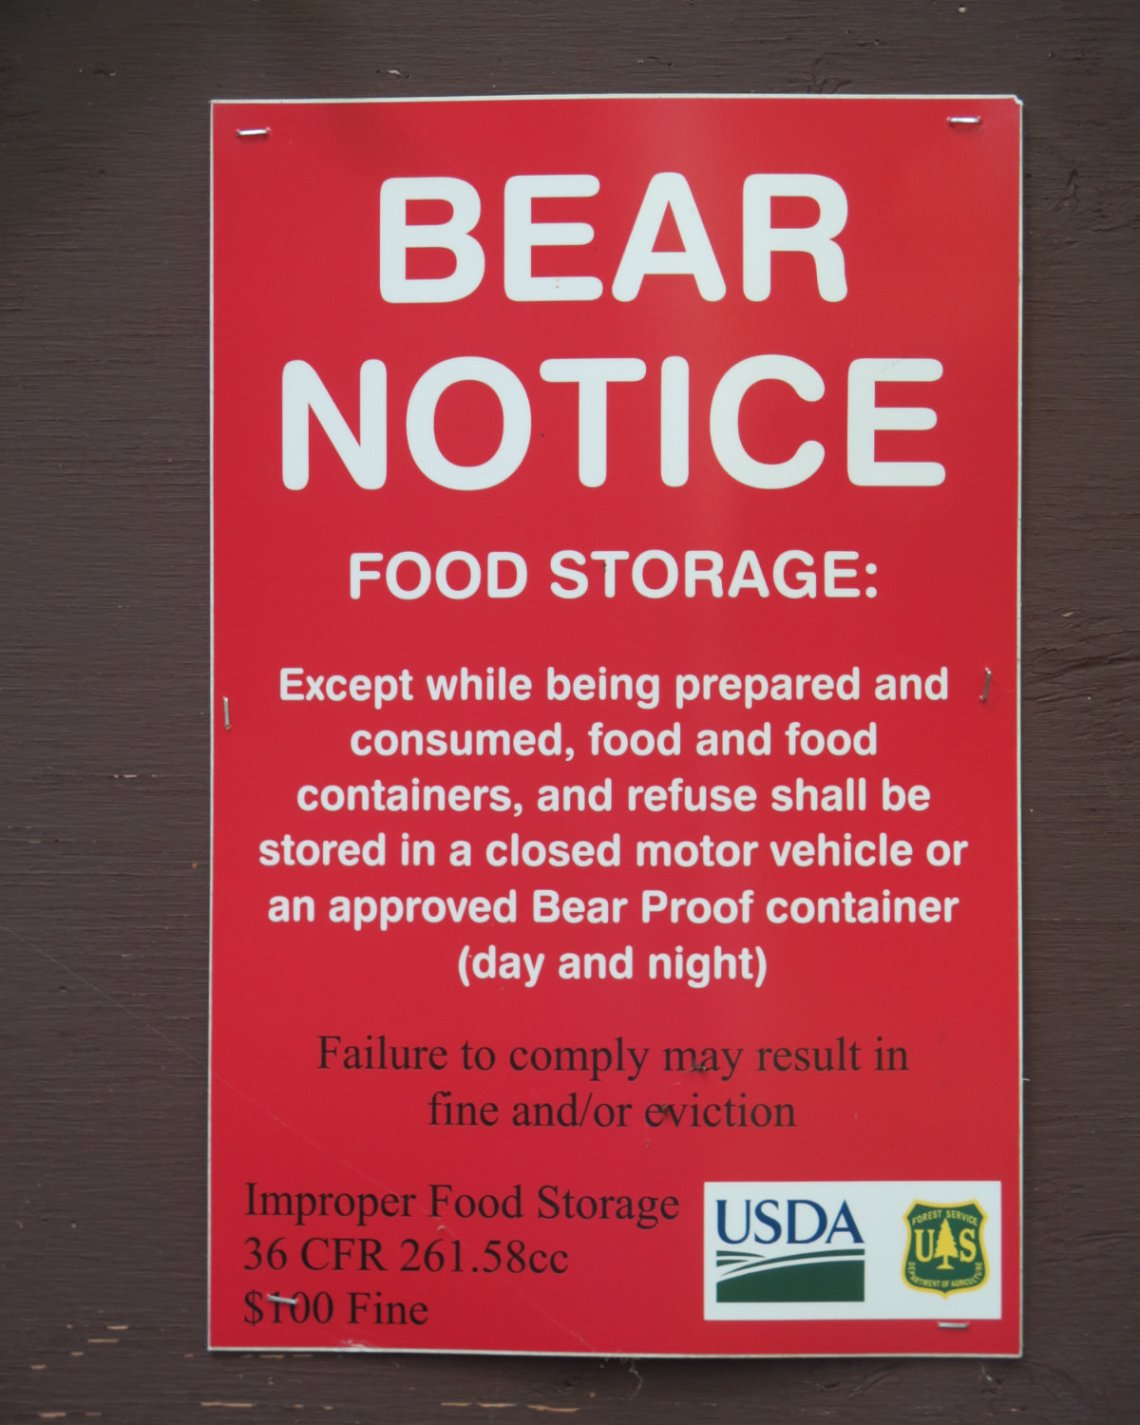 Bear_Notice_Osceola_20190723